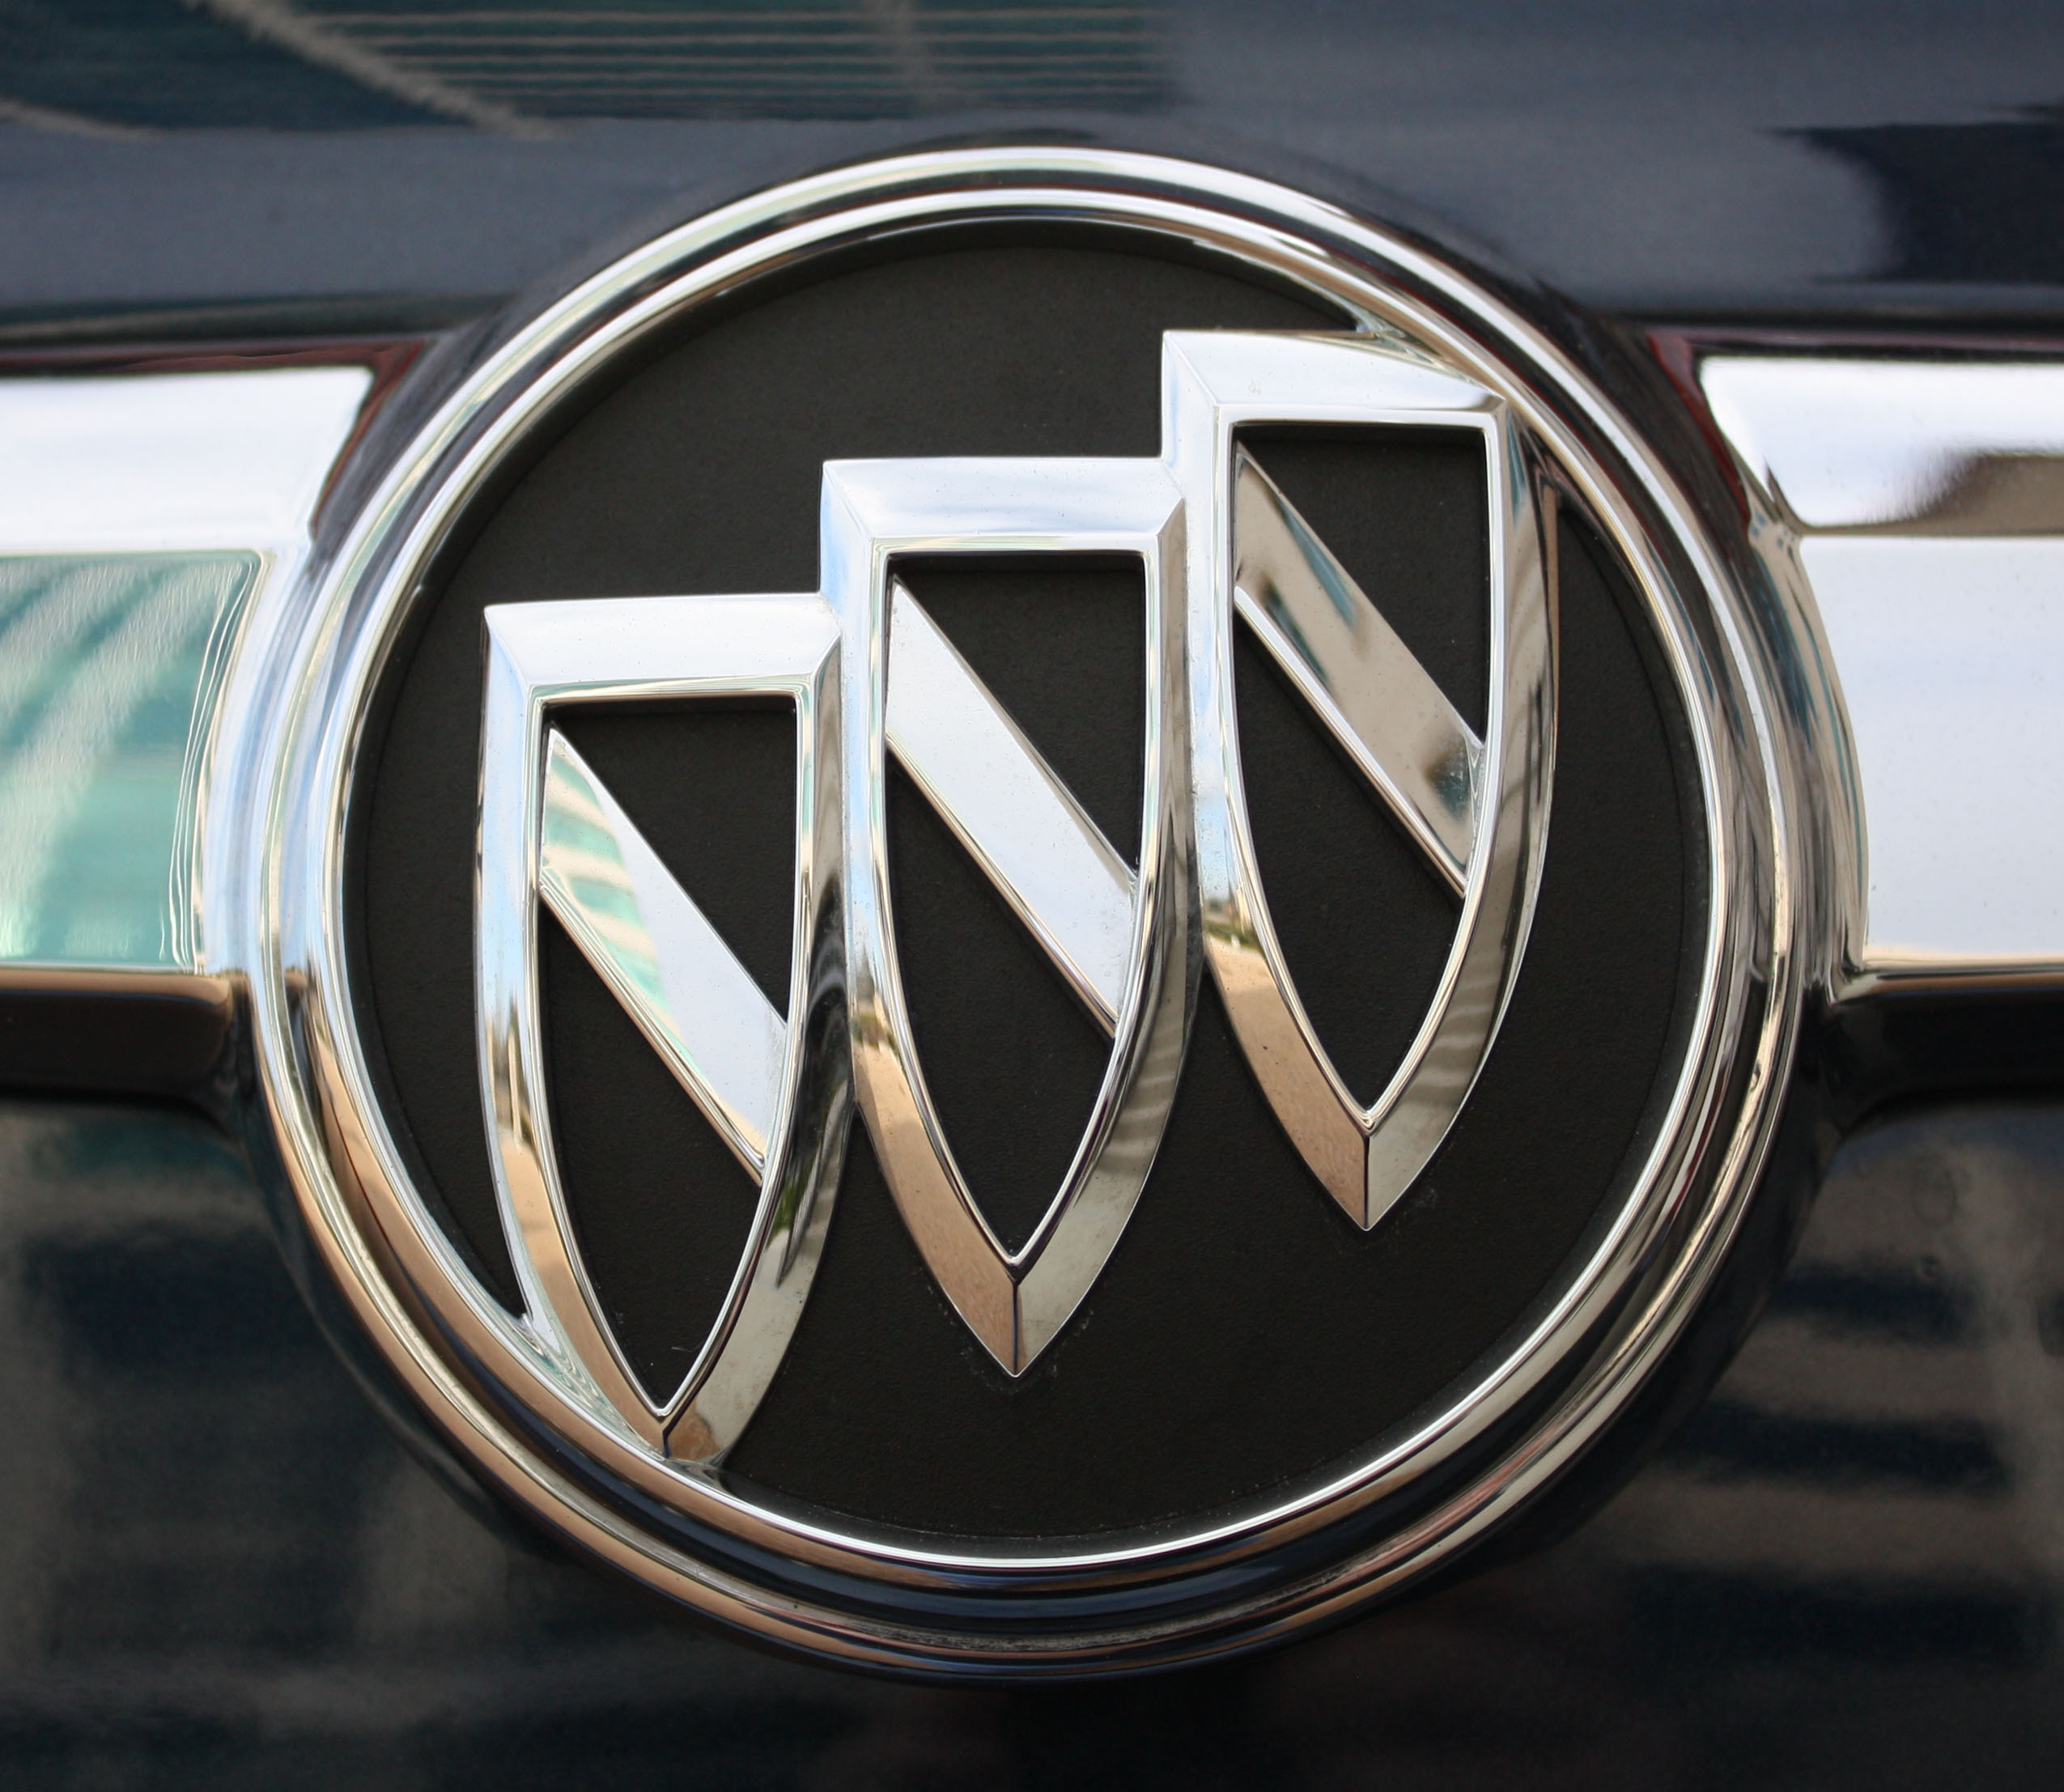 Buick Logo Buick Car Symbol Meaning And History Car Brand Names